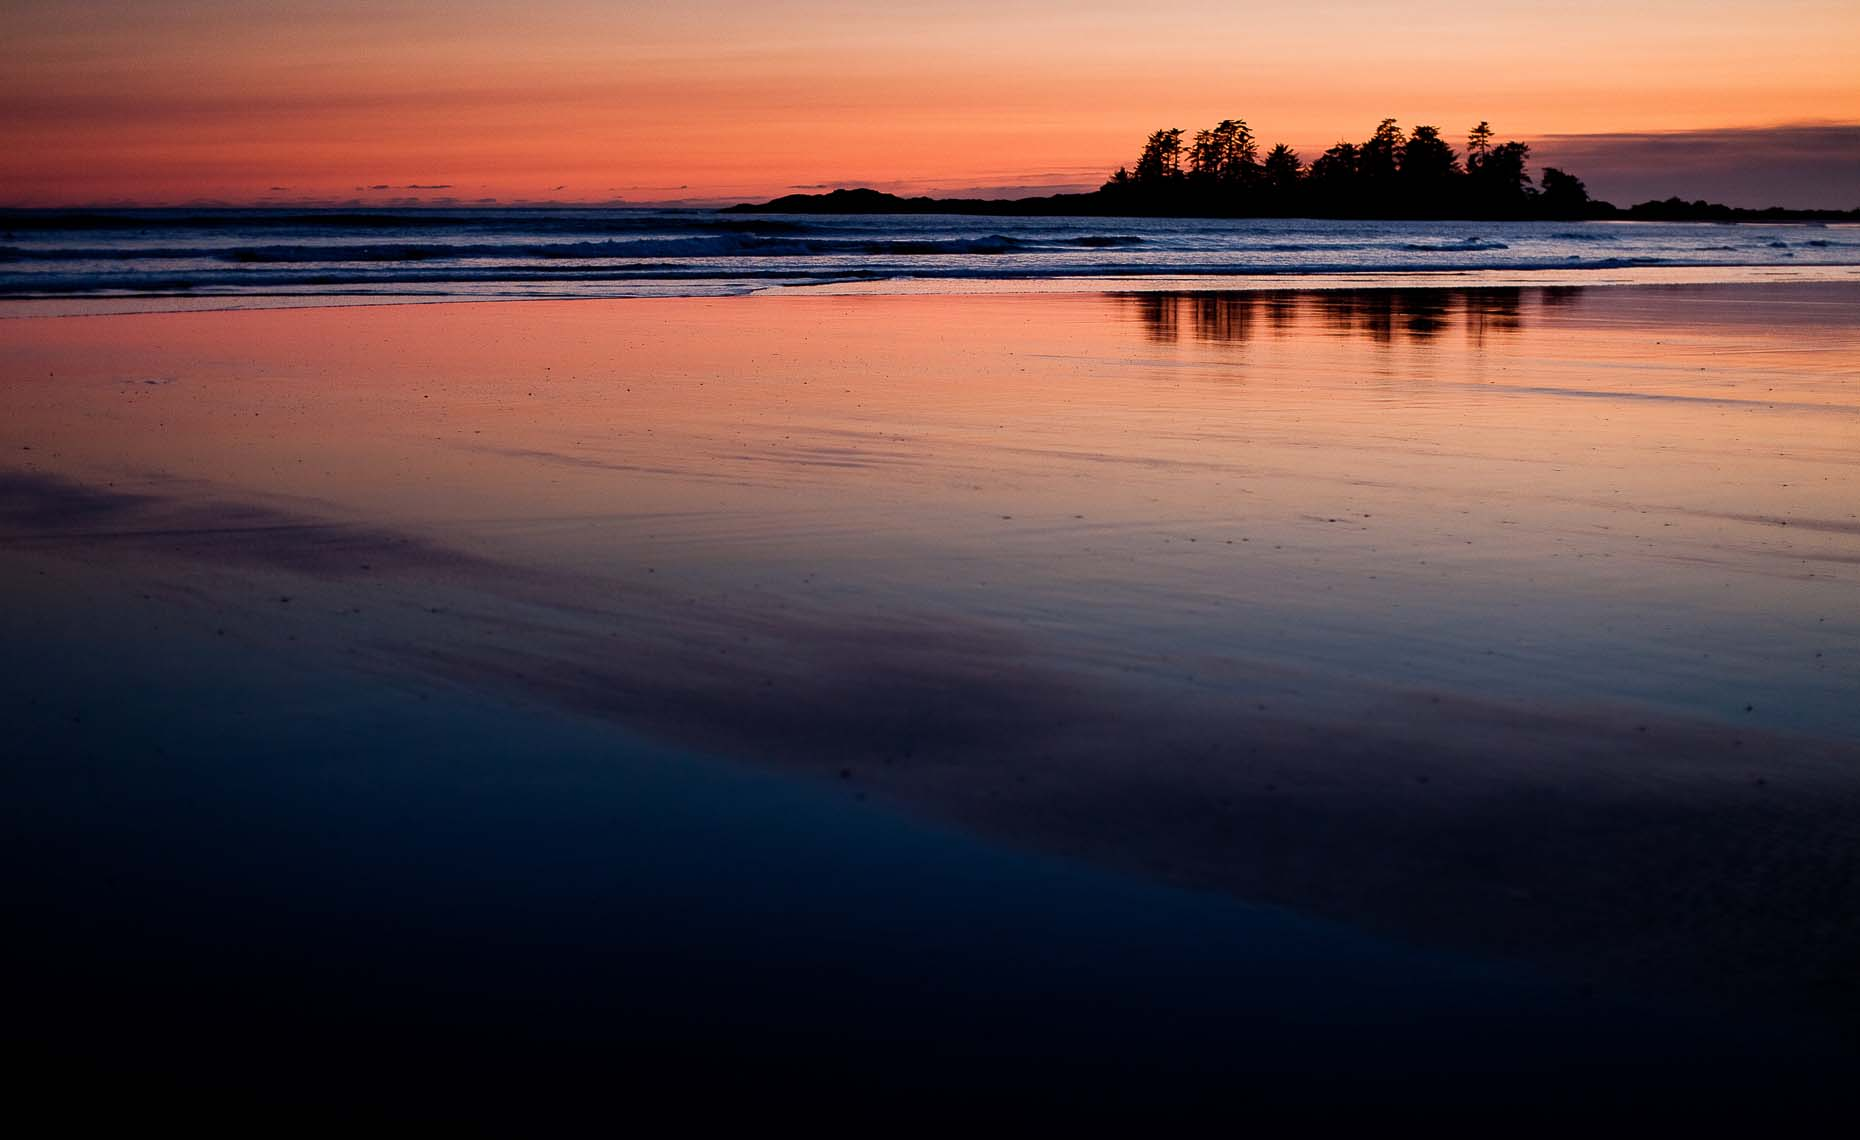 Whistler BC photographer captures ocean landscape at sunset on vancouver island.